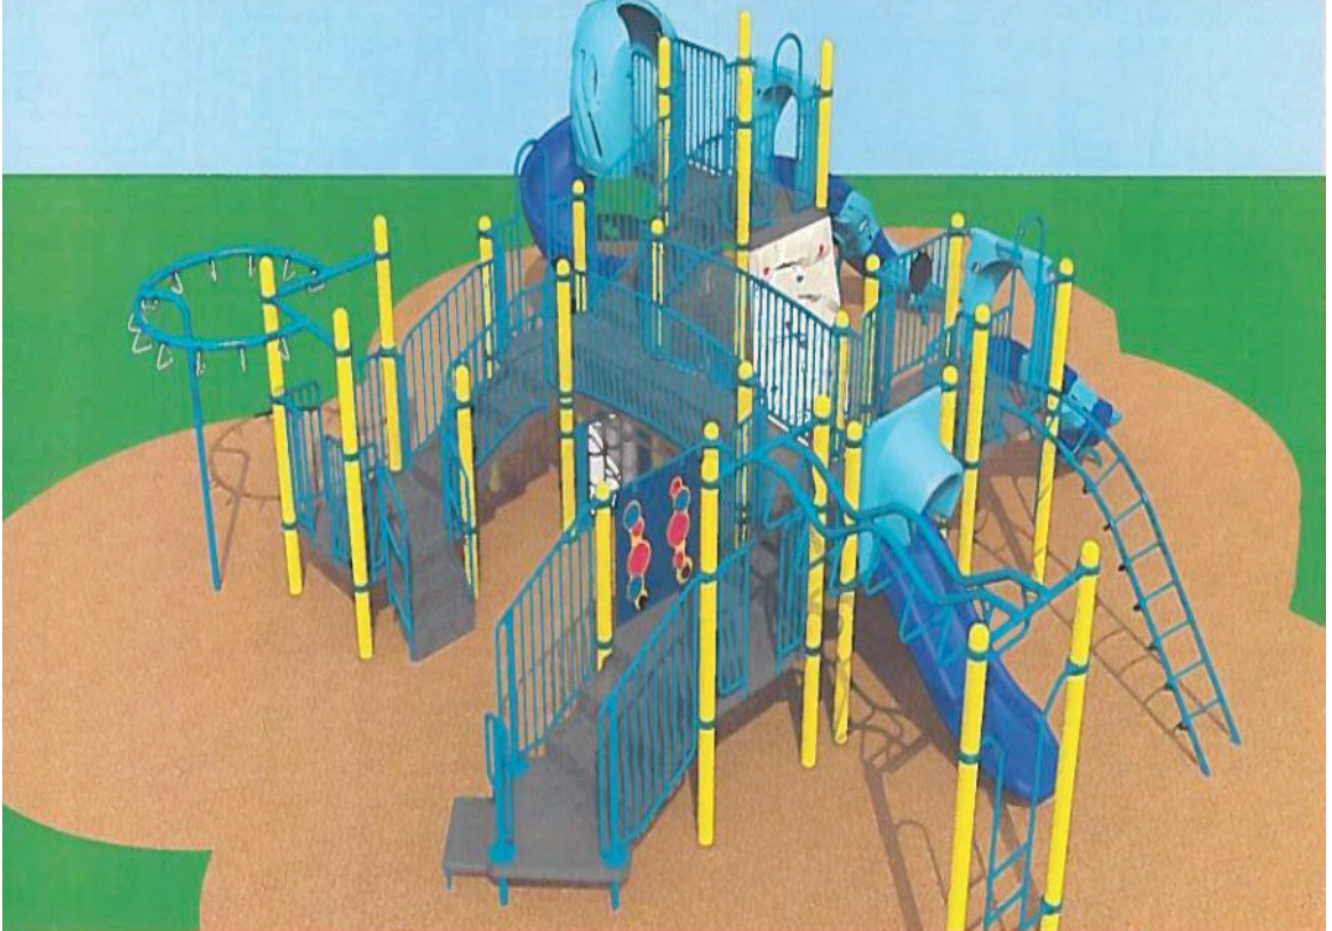 Image of playground structure